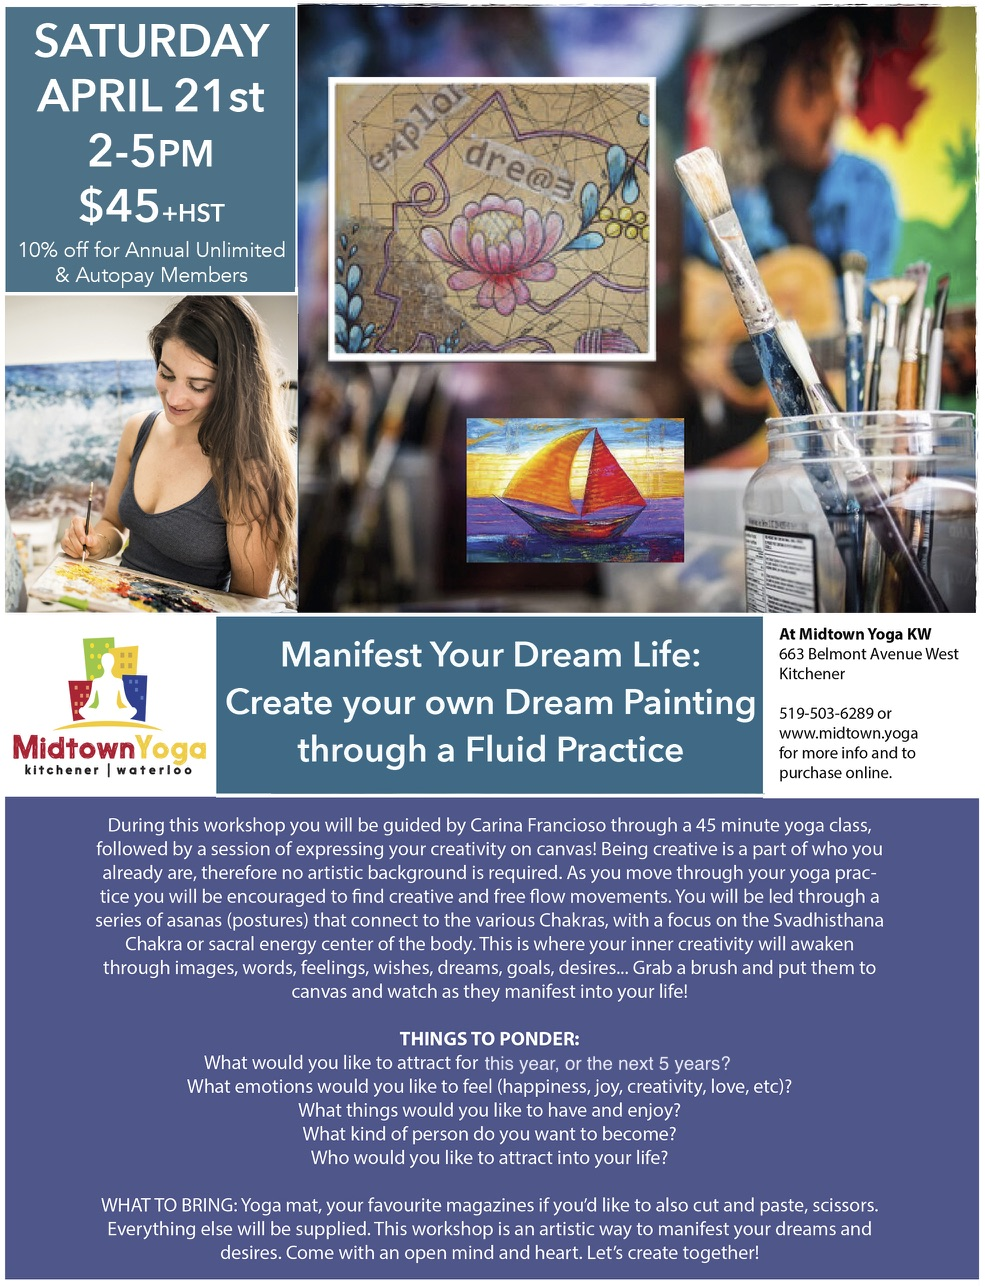 Events | Midtown Yoga Kitchener Waterloo